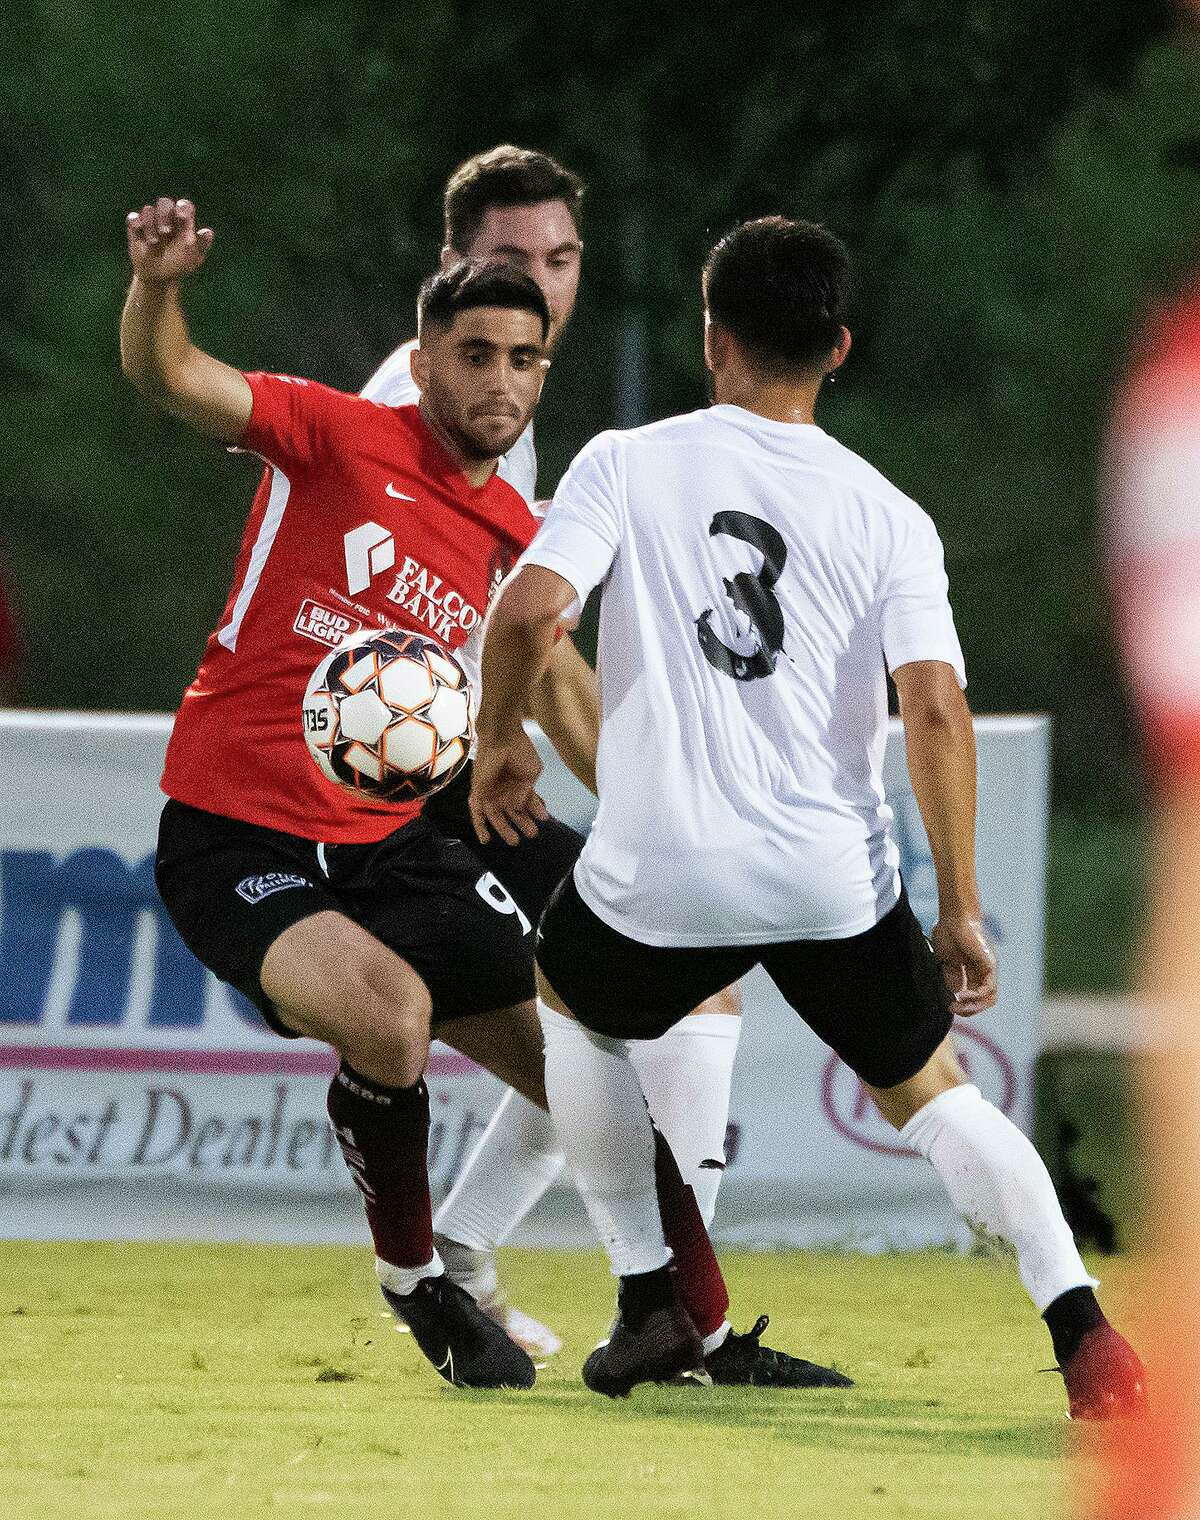 Nadav Datner scored twice Thursday in the Heat's 3-2 win over the Denton Diablos FC on Thursday to raise his total to five goals in four games this season.